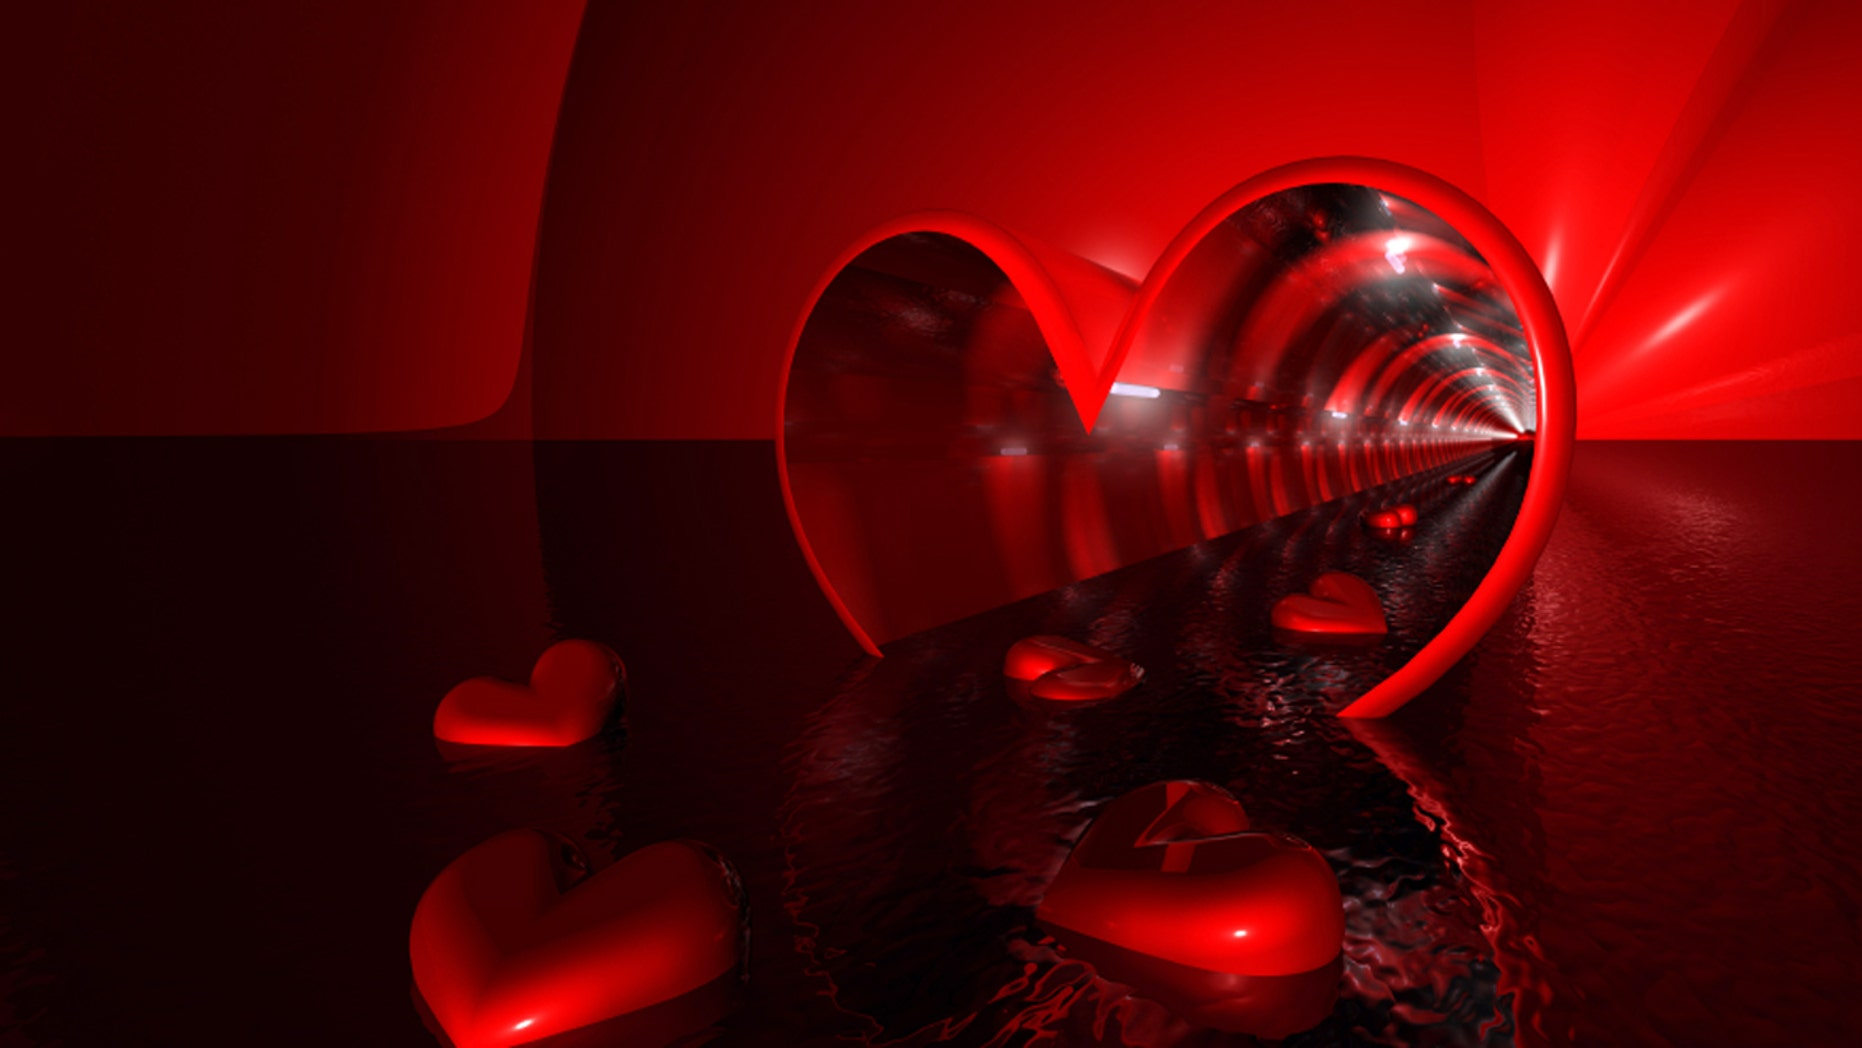 Not just a classic Tunnel of Love. Brazil's new theme park will have vibrating bumper cars and aphrodisiac foods.